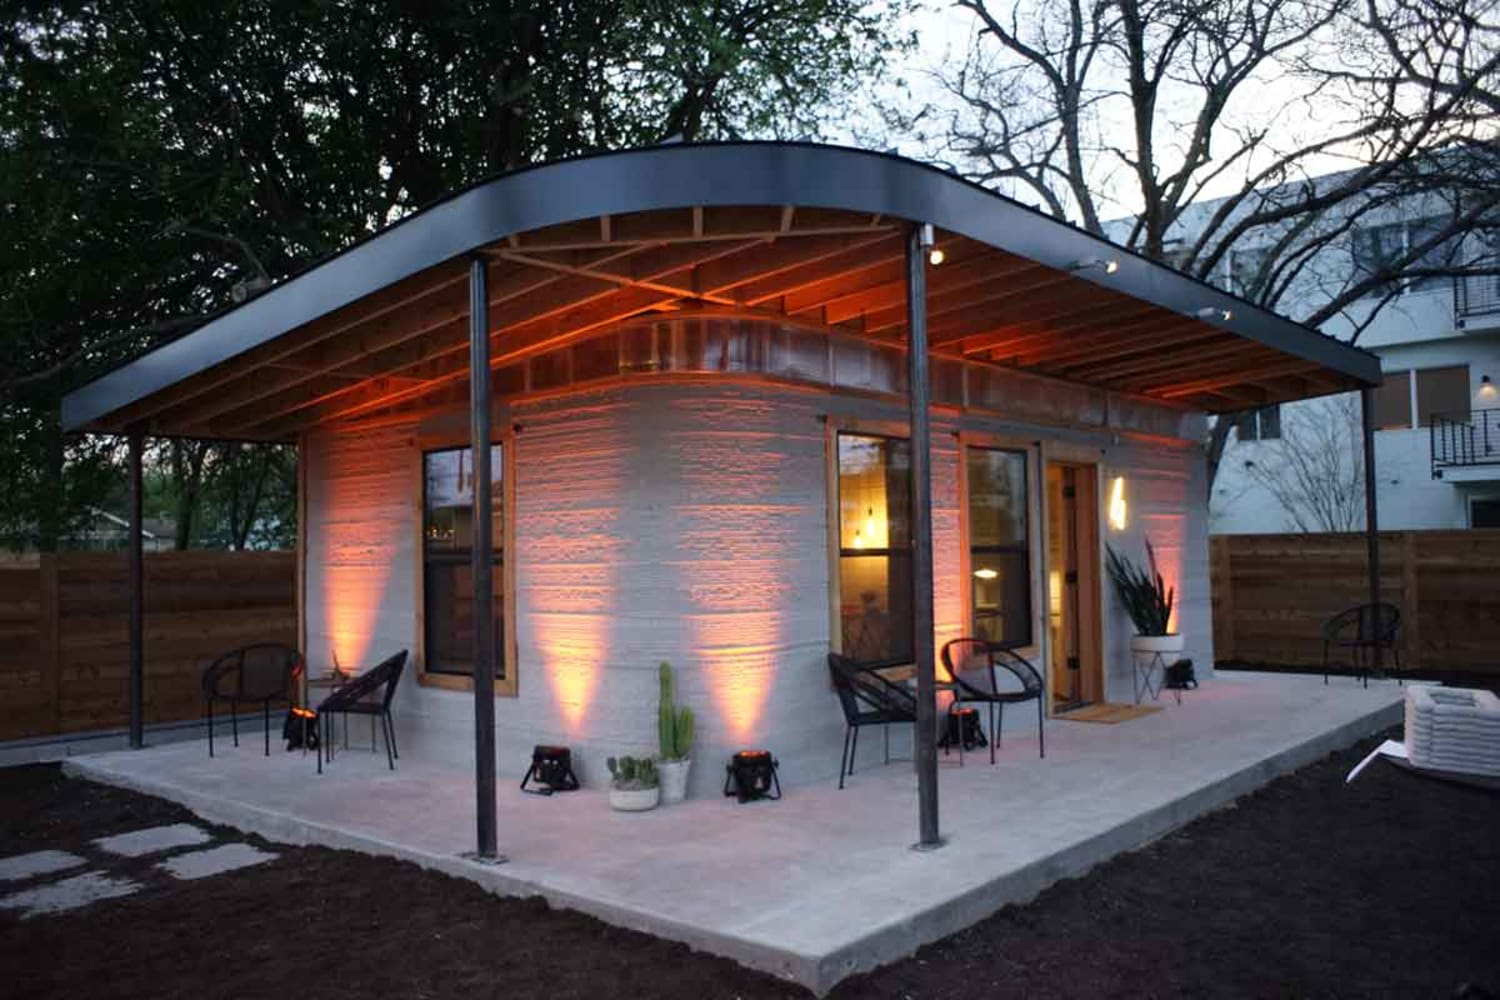 WEB First Permitted 3 D Printed Home US